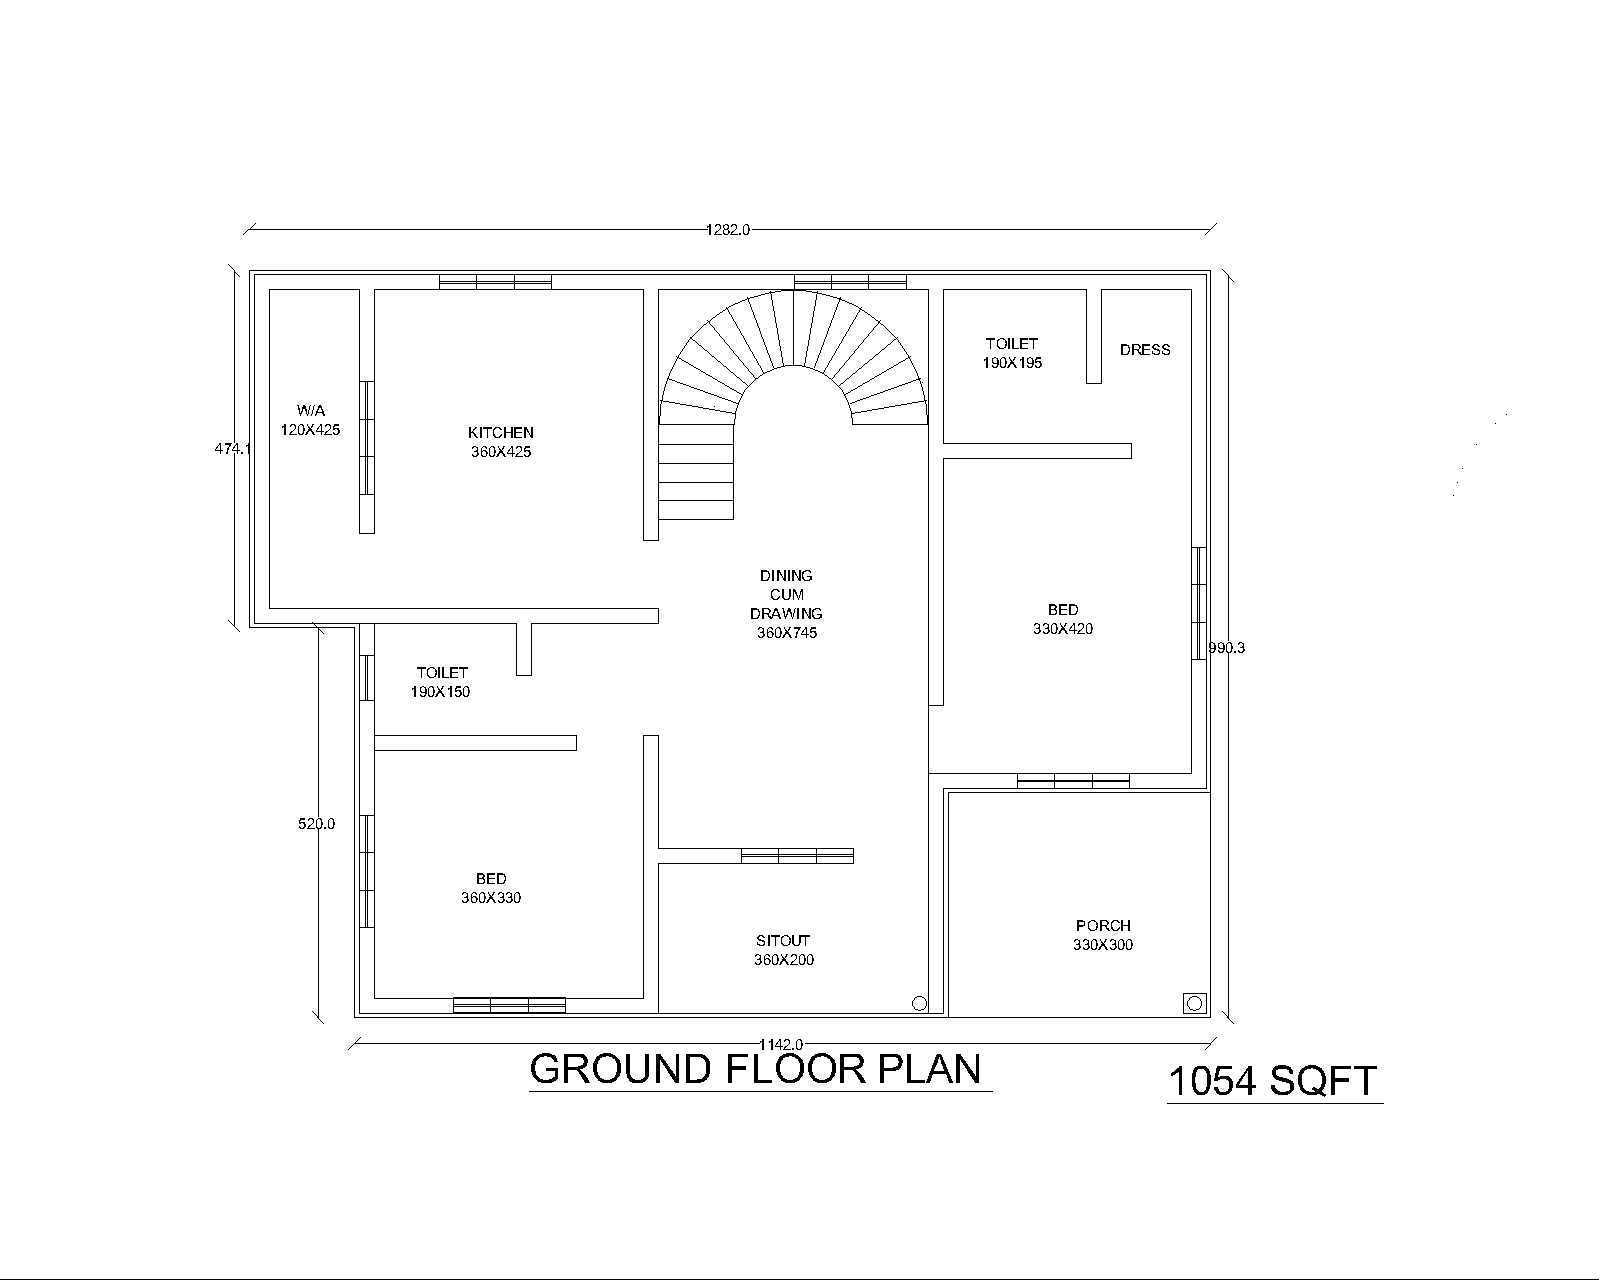 Uu27itu two bedroom house plans in kerala for Kerala two bedroom house plans